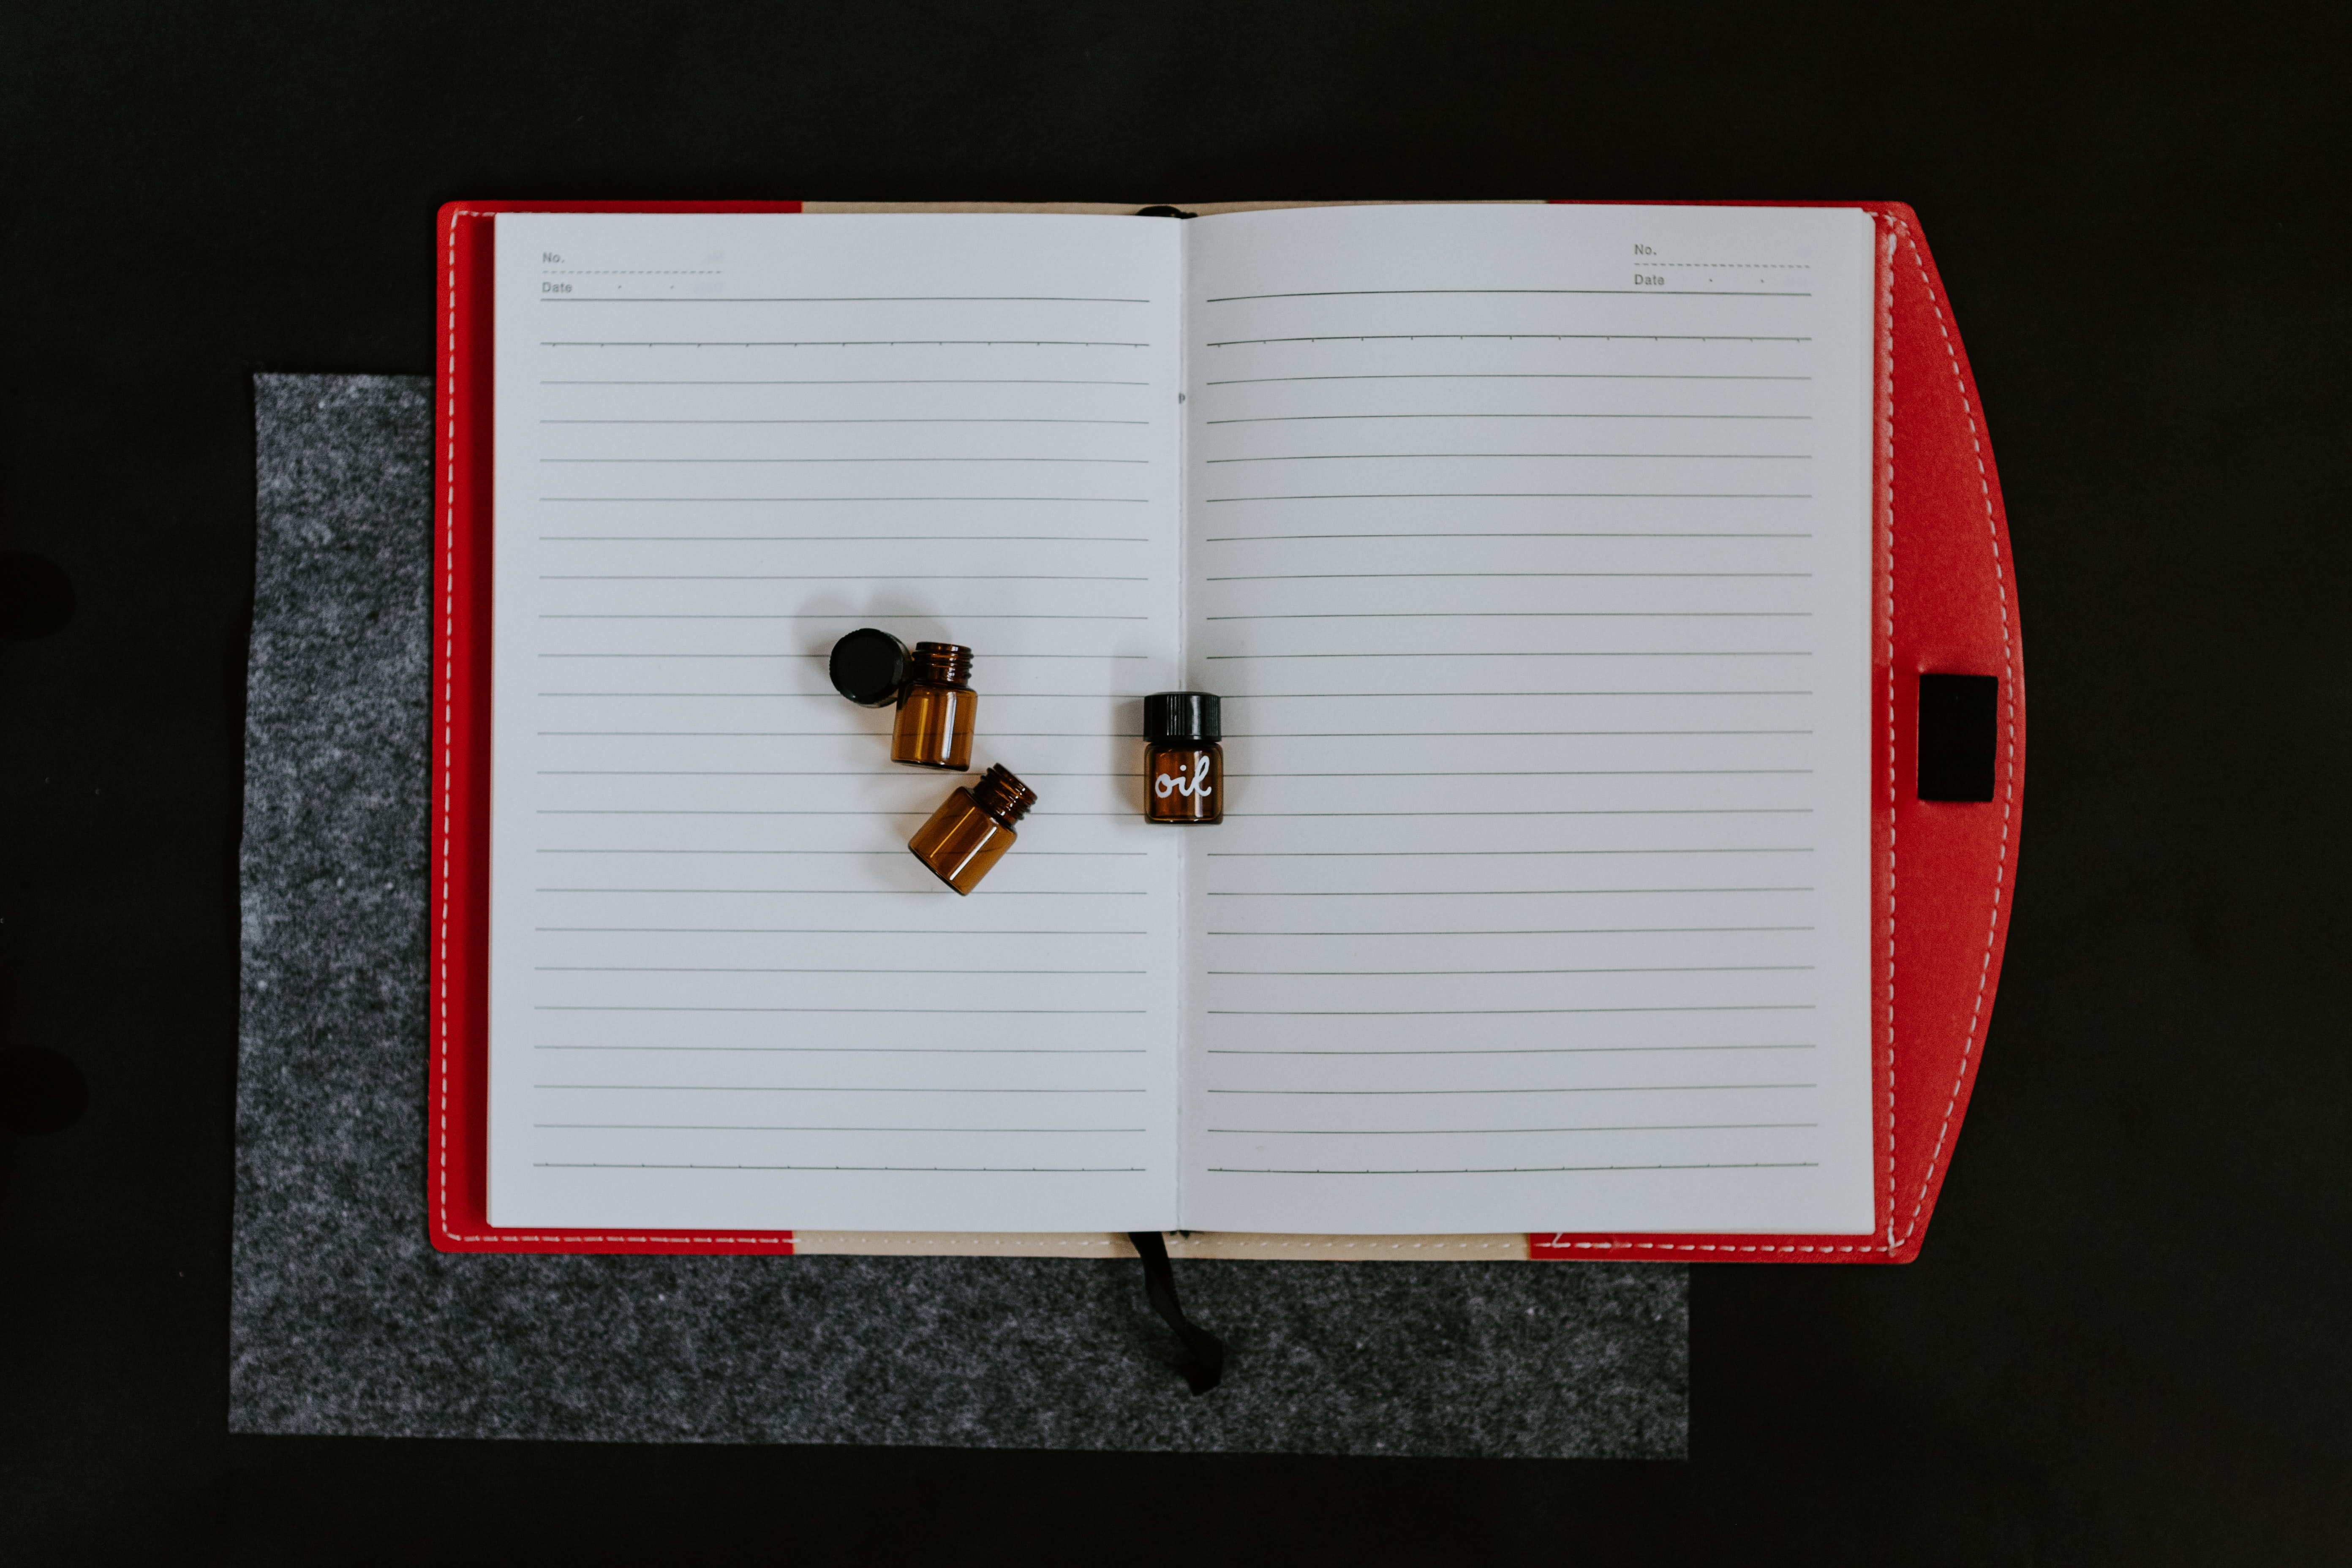 Small jars on top of a notebook with a red cover. Photo courtesy of Kelly Sikkema on Unsplash.